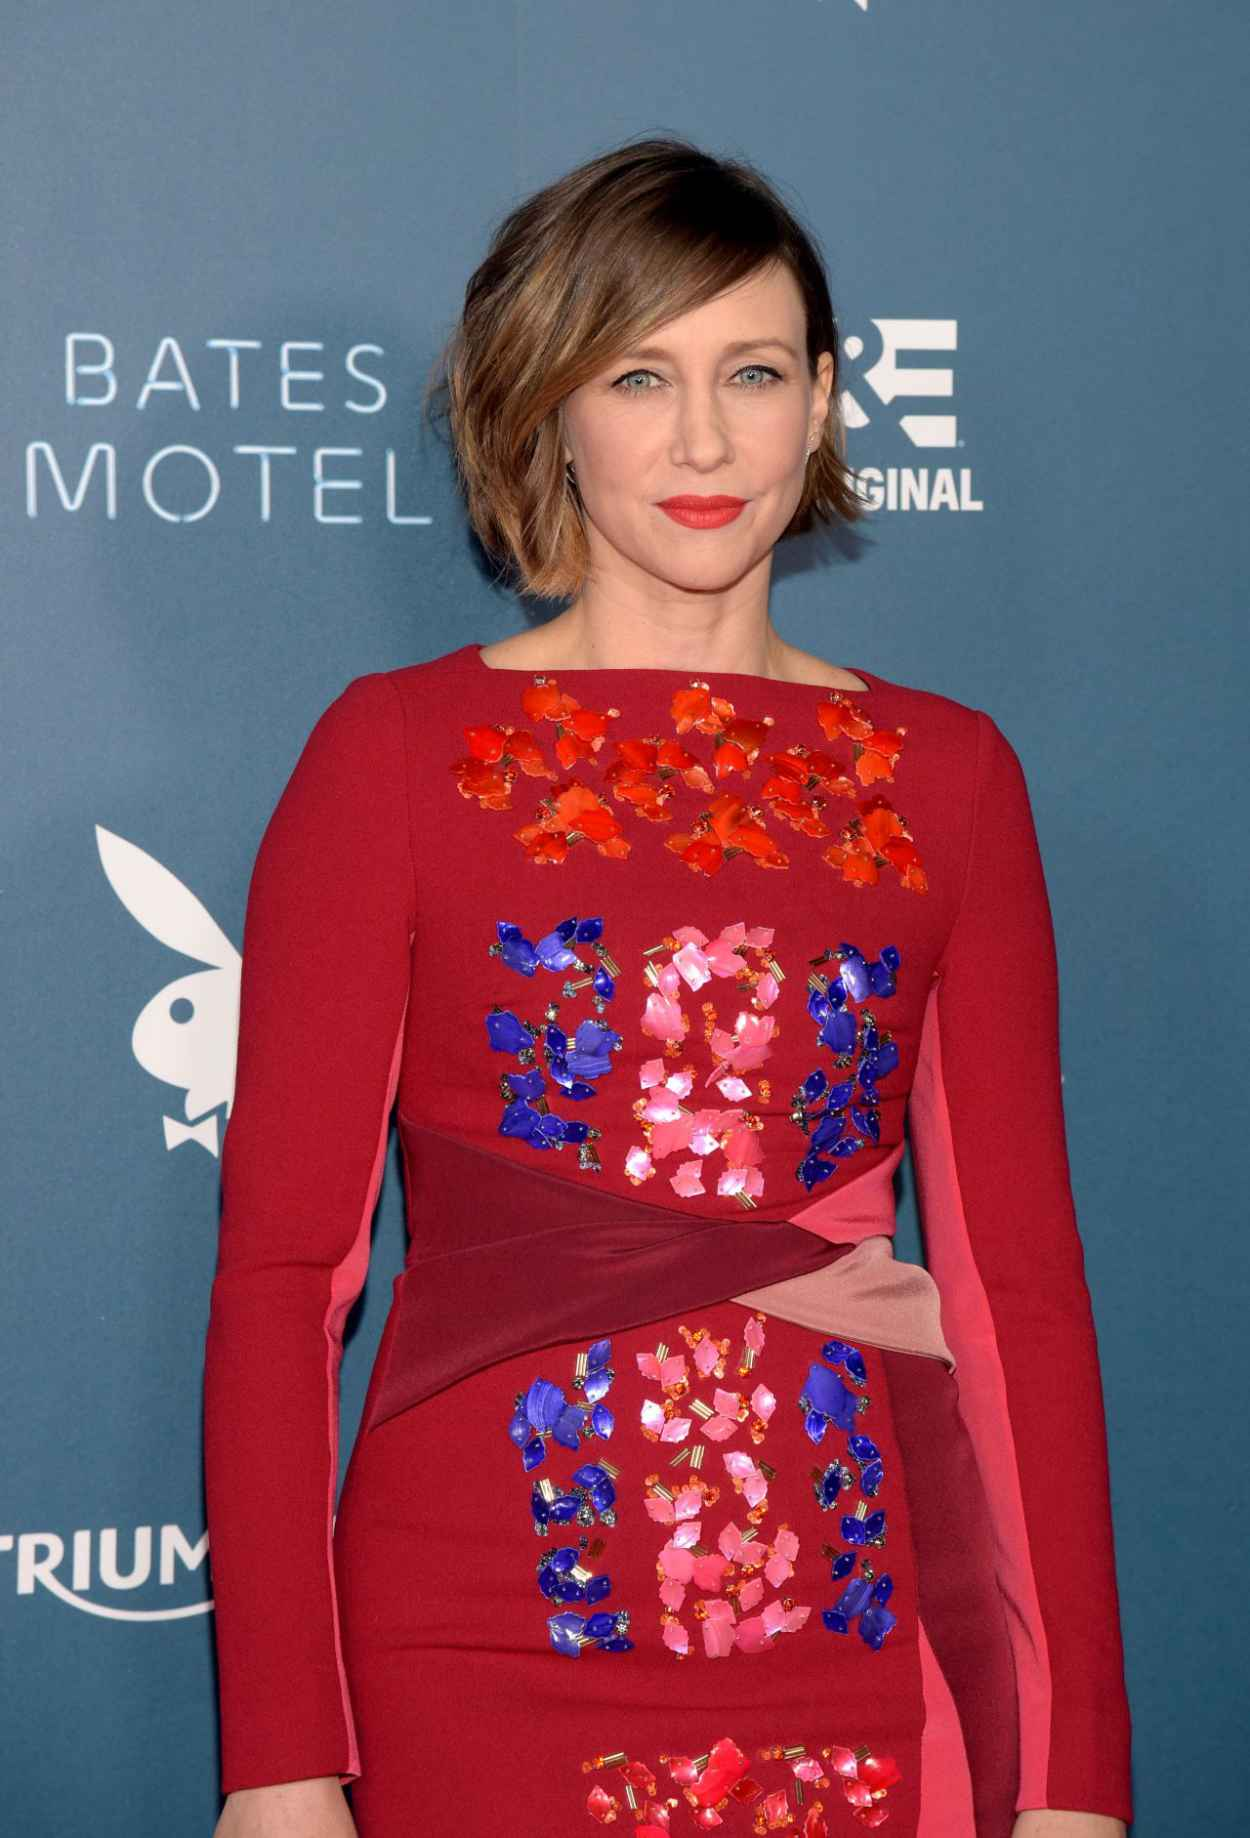 Vera Farmiga - Playboy and A&E Bates Motel Event During SDCC 2015-1